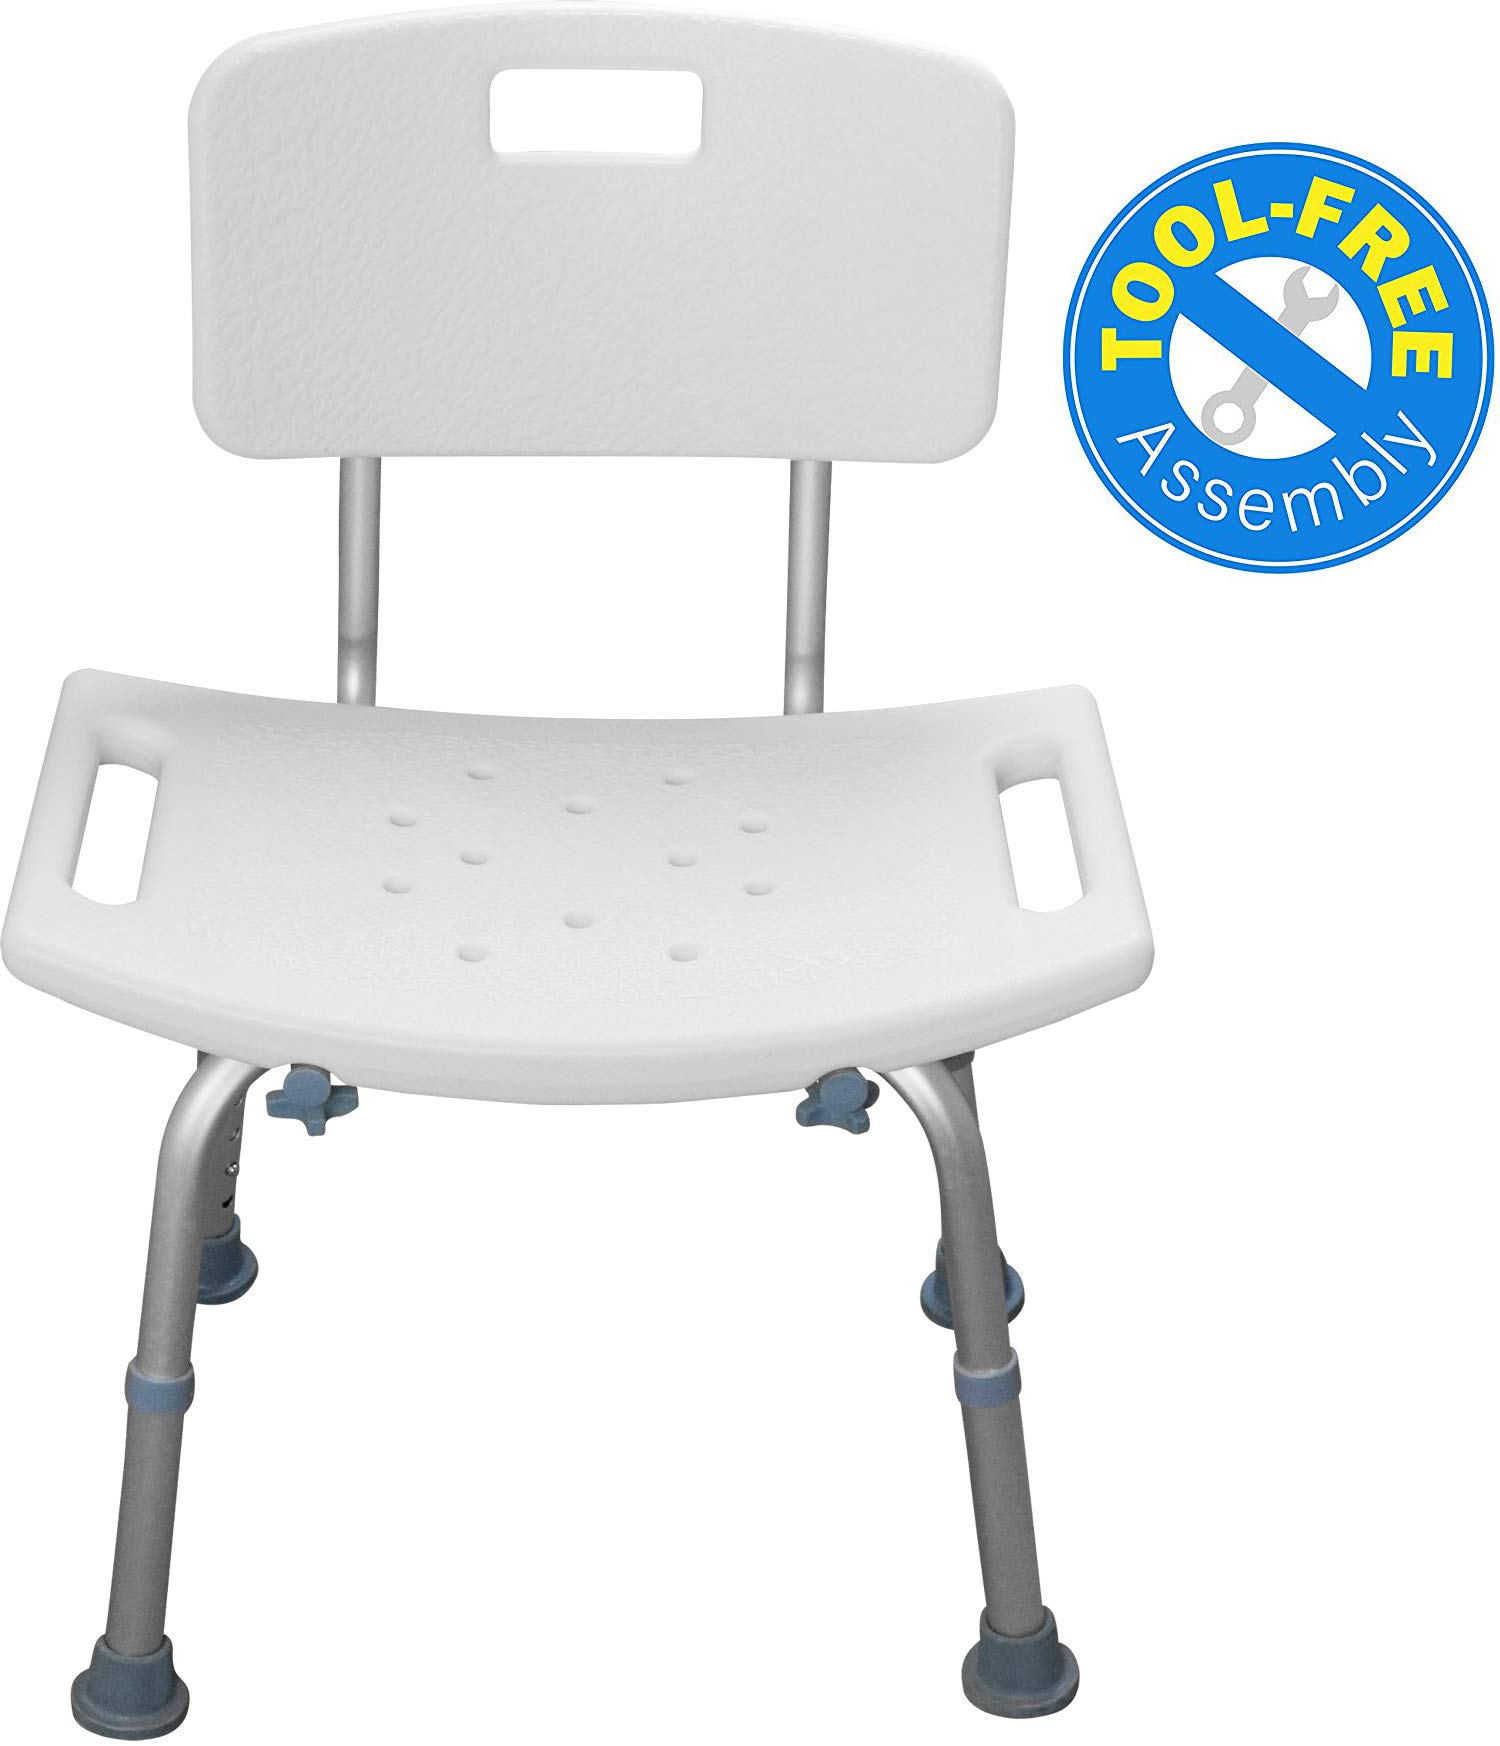 Shower Chair with Back - Tool Free Bathtub Chair for Handicap, Disabled, Seniors & Elderly - Height Adjustable Medical Bath Seat Handles for Home Care Usage - by BrightCare